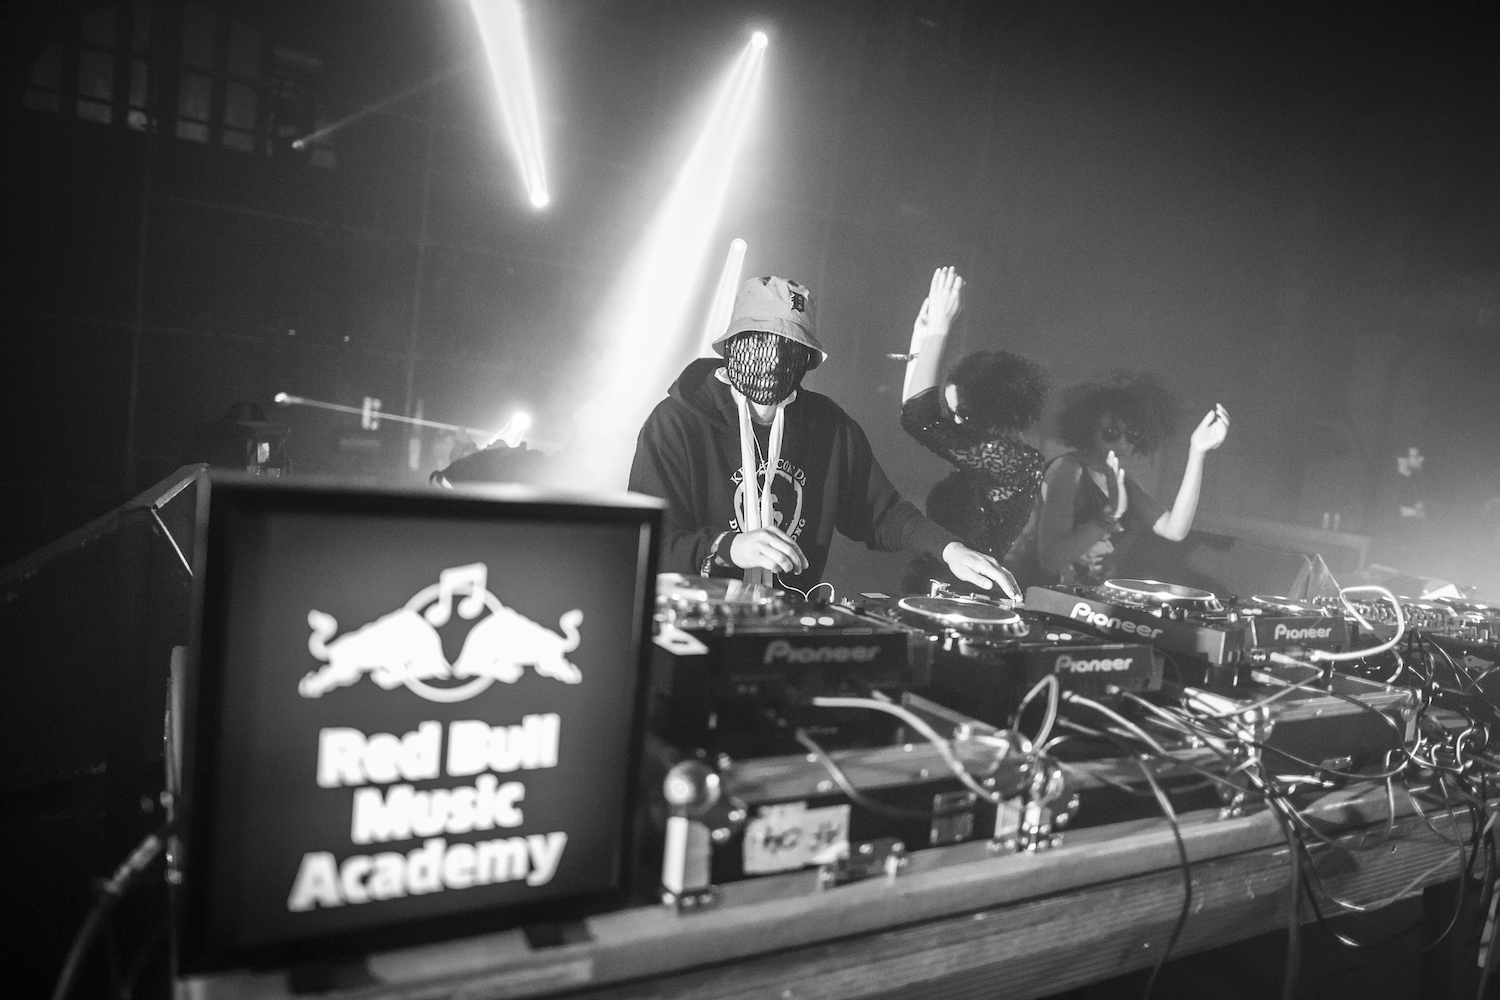 Moodymann performs at Red Bull Music Academy stage during Nuits sonores festival in Lyon, France on May 15th 2015